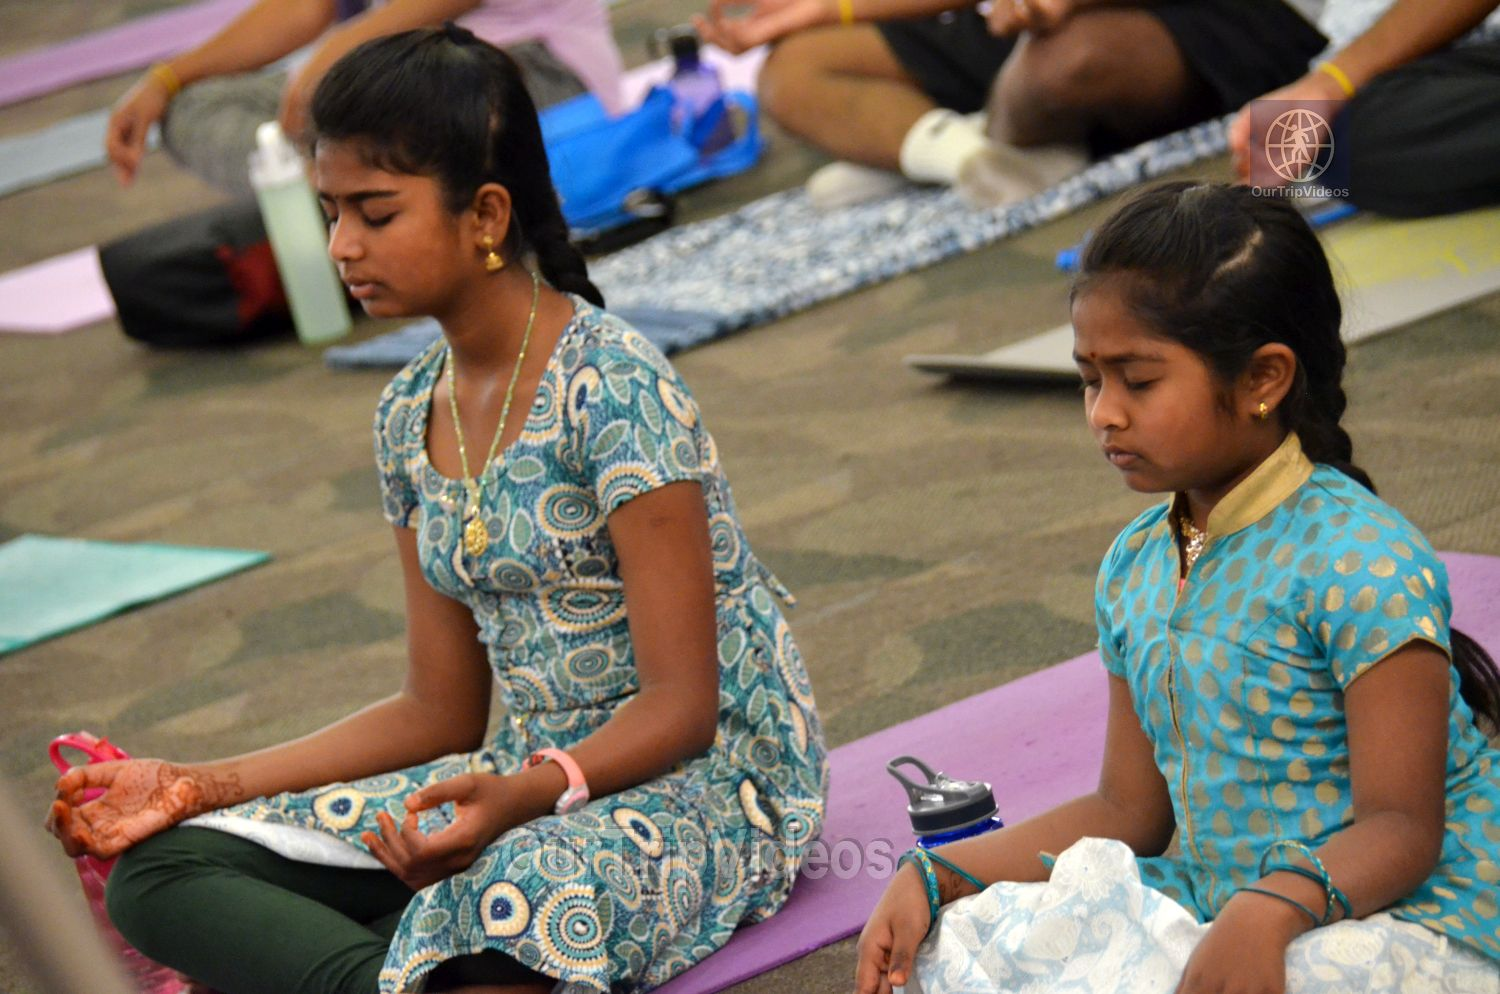 International Yoga Day at ICC, Milpitas, CA, USA - Picture 19 of 25